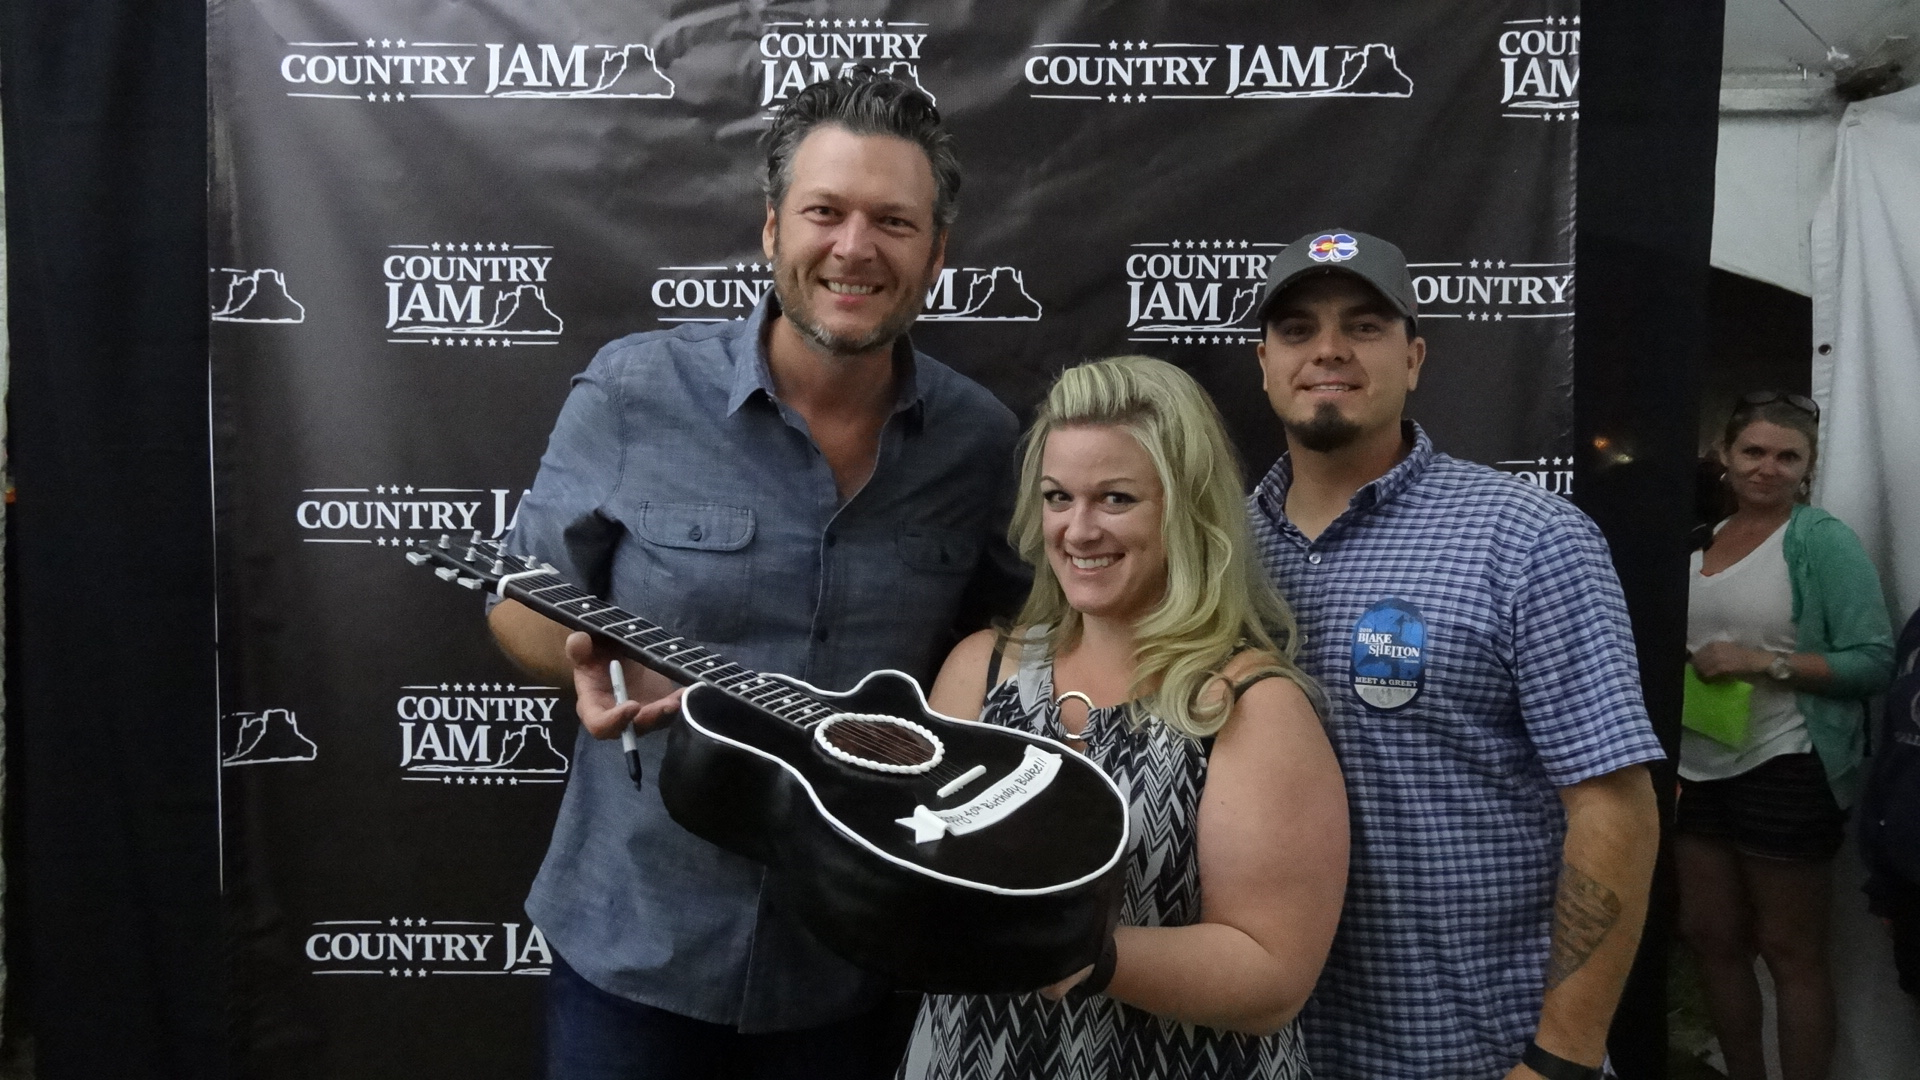 Blake shelton meet greet photos at country jam 2016 country jam blake shelton meets with fans backstage before his show at country jam 2016 kristyandbryce Image collections